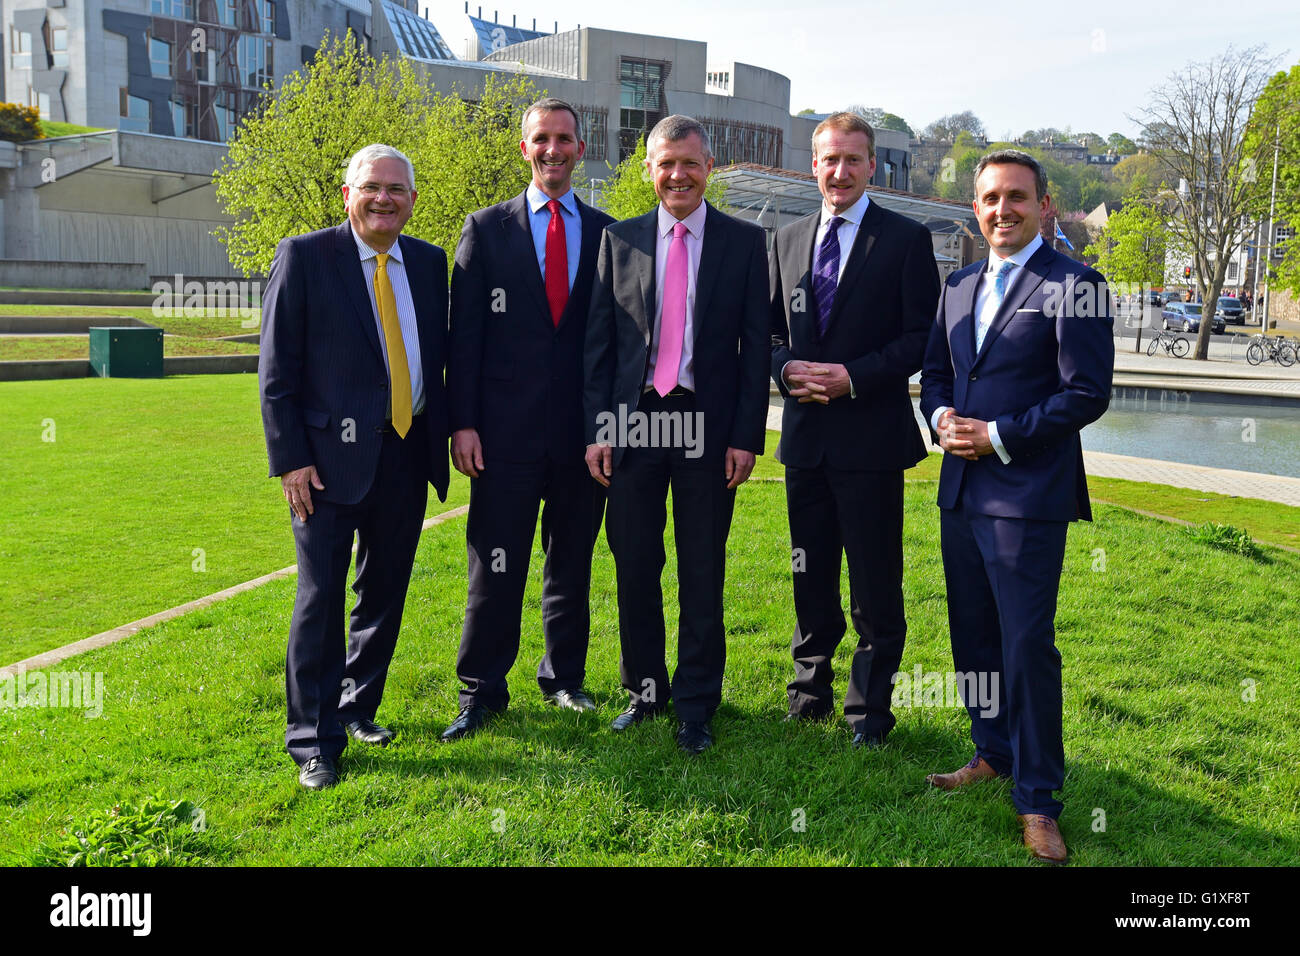 The newly-elected Scottish Liberal Democrat group of MSPs outside the Scottish Parliament, following the May 2016 - Stock Image